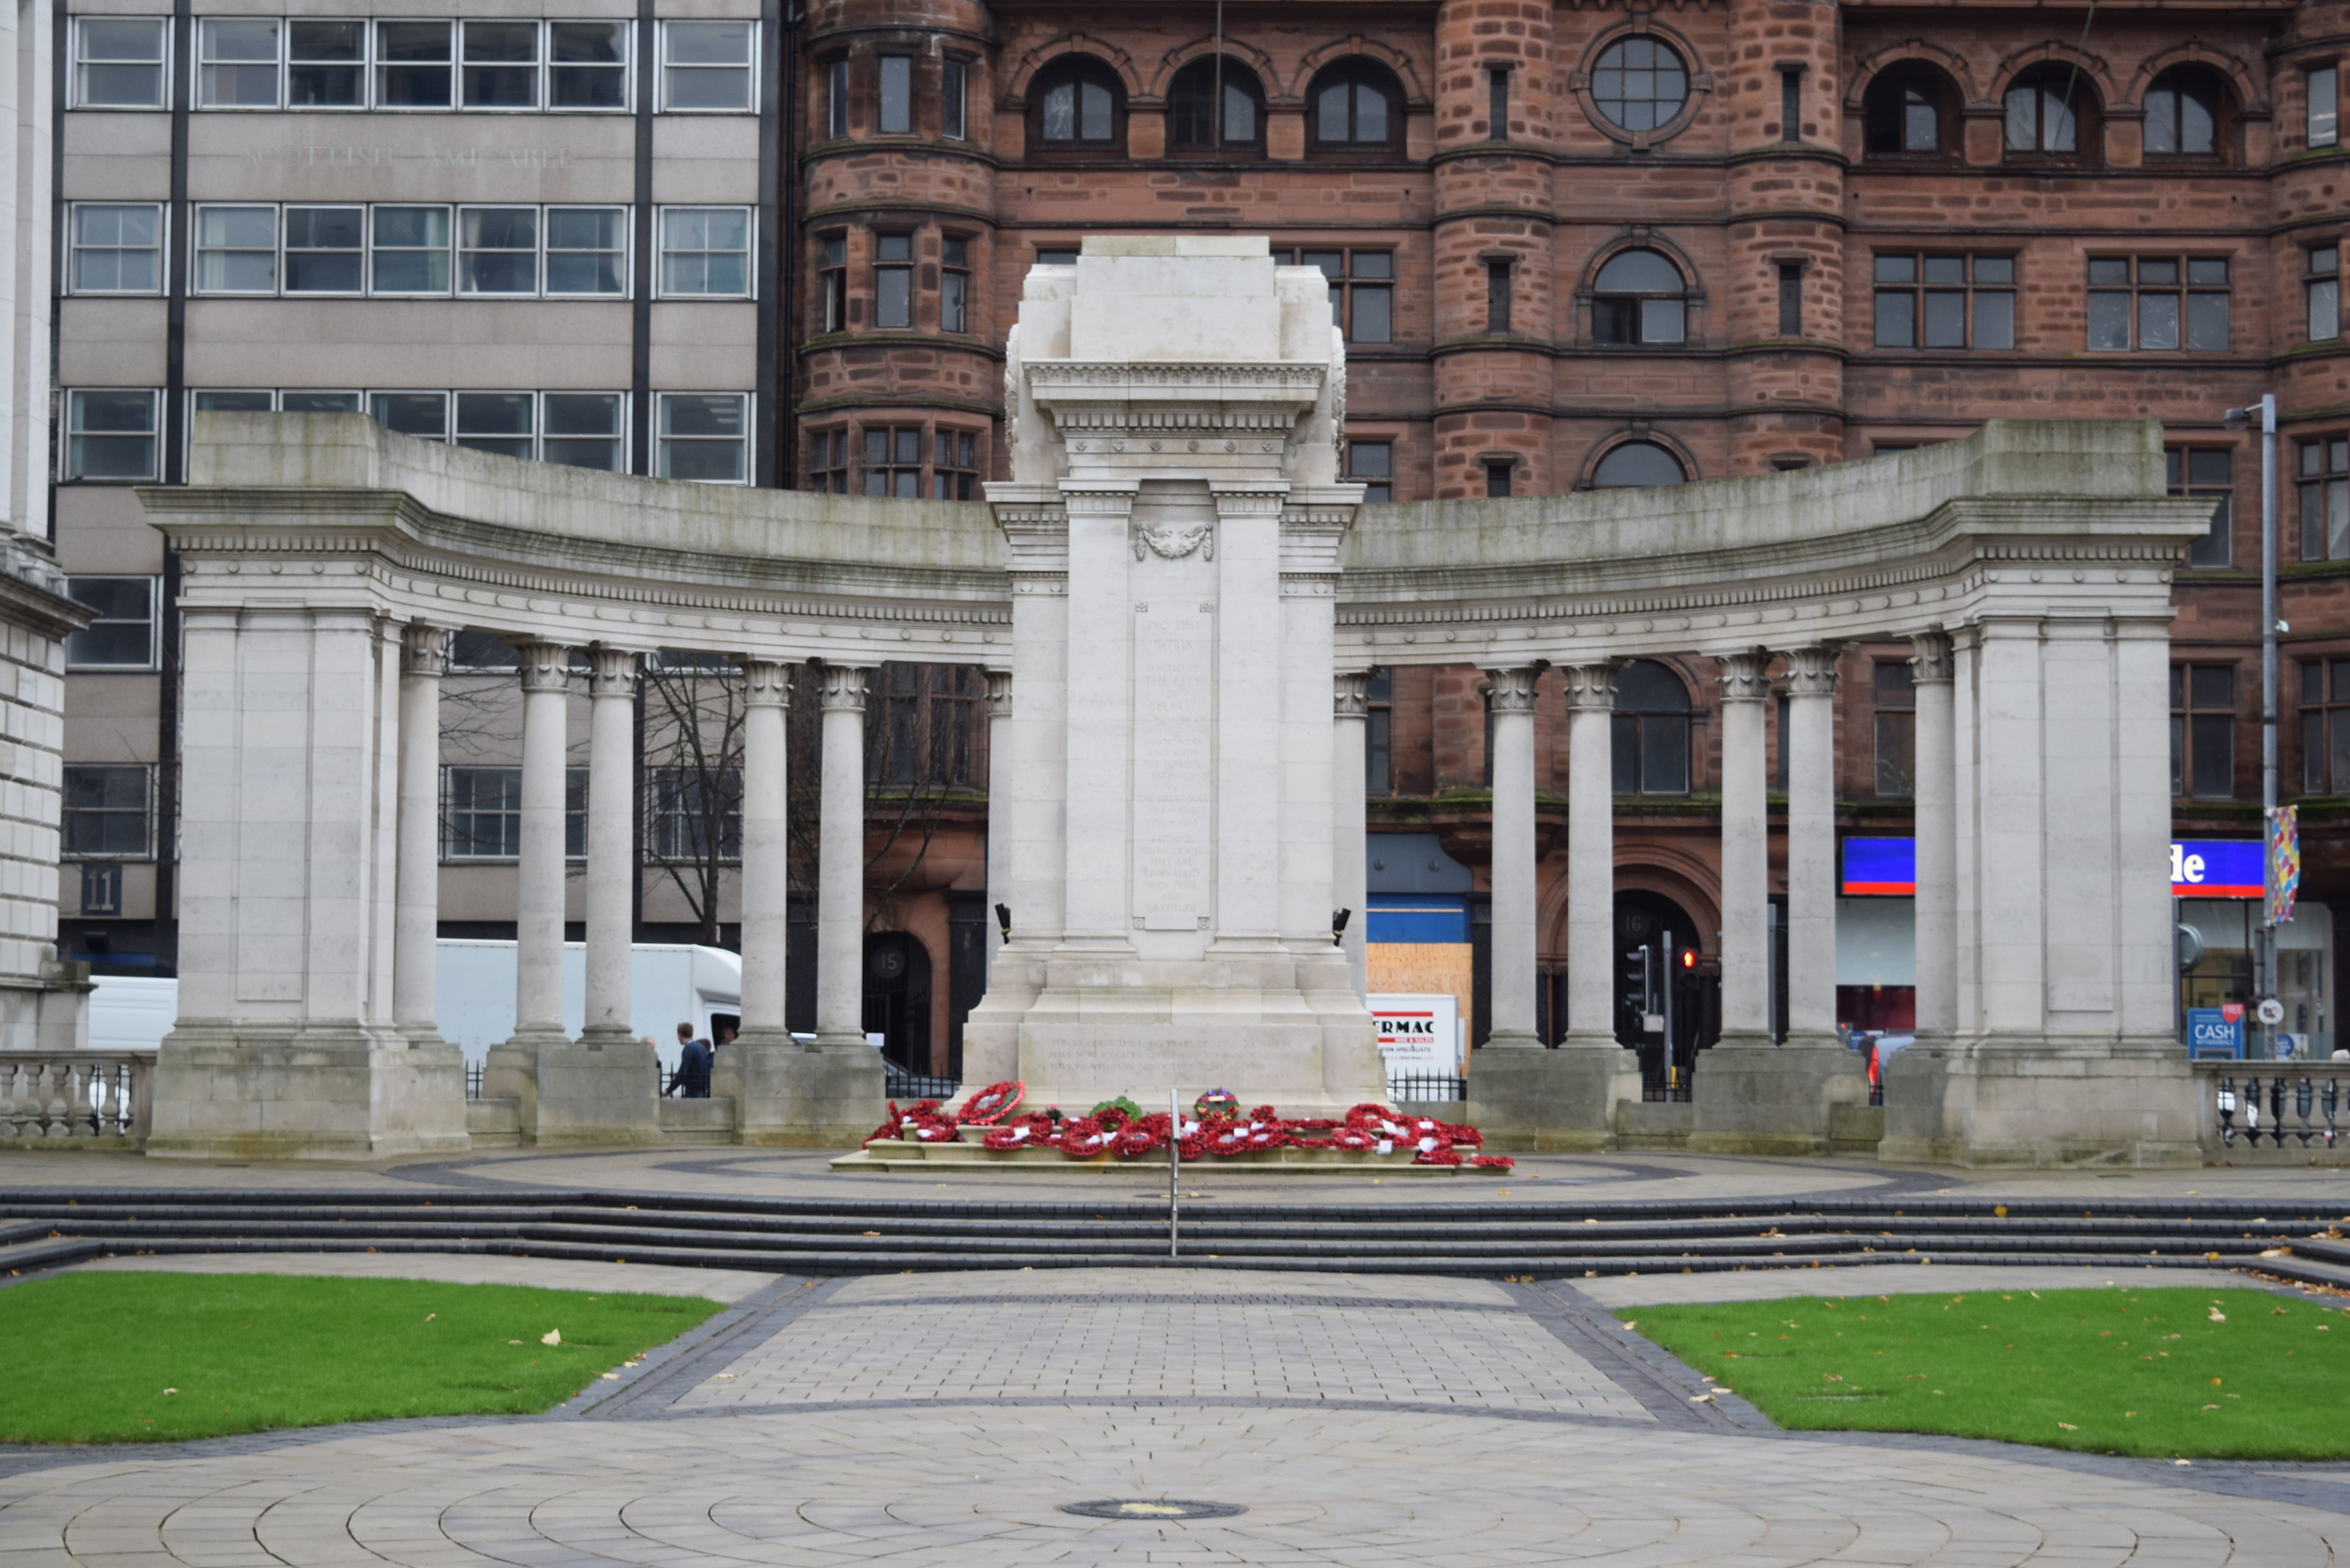 Garden of Remembrance and Cenotaph, Belfast